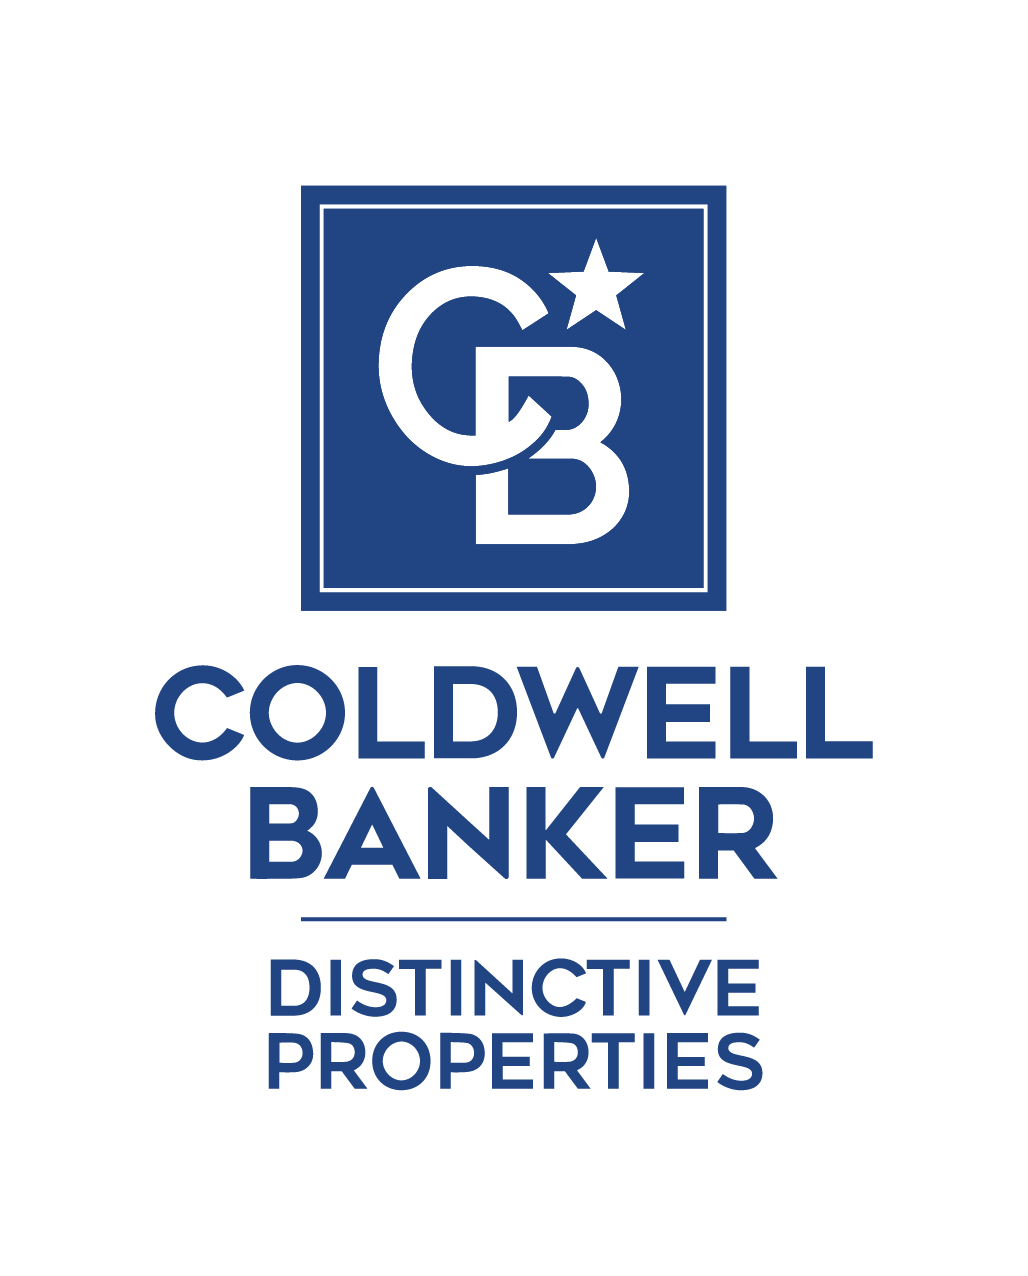 Dennis Bailey - Coldwell Banker Distinctive Properties